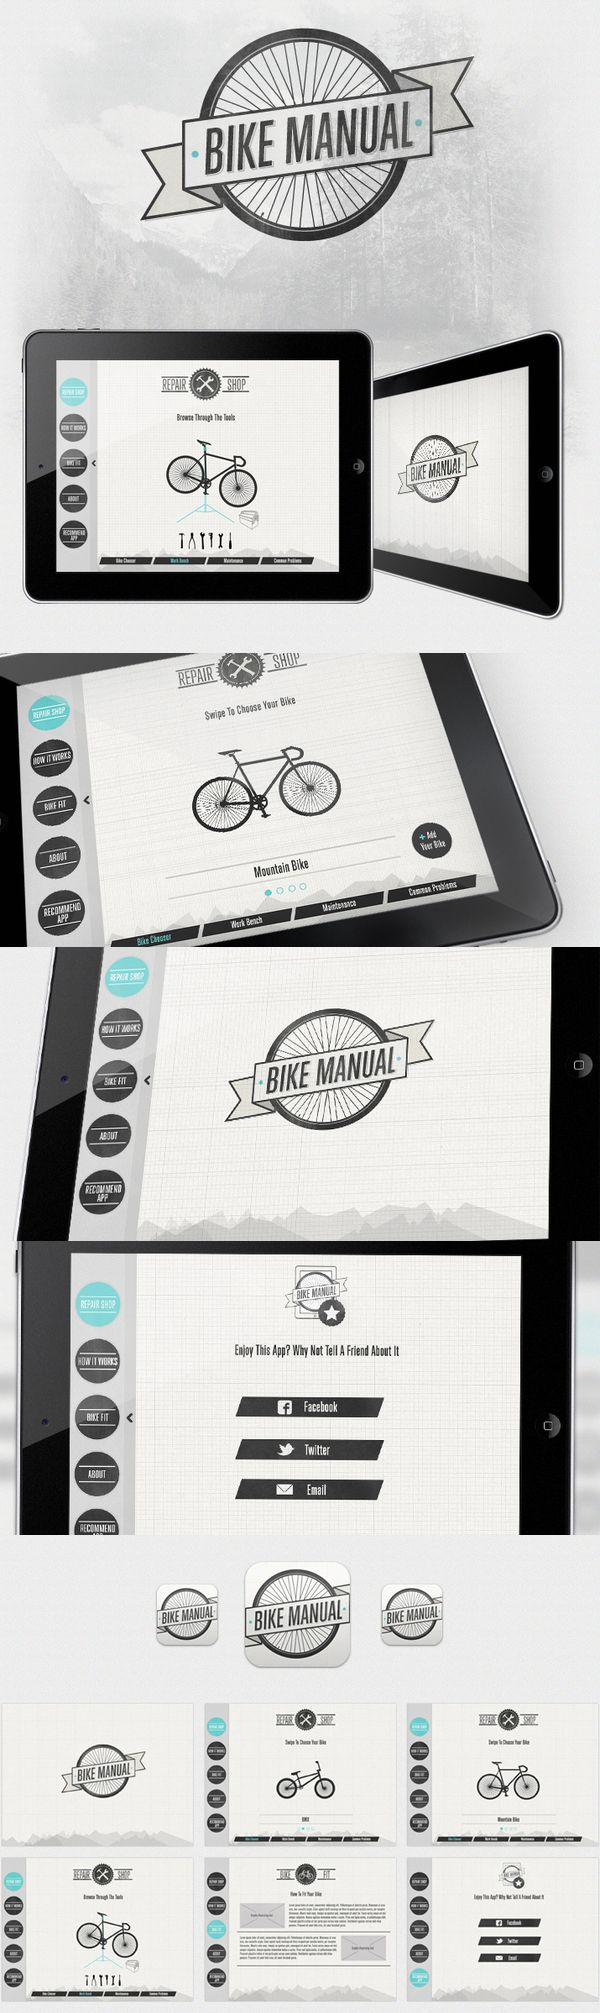 "I'd say ""Bike Manual"" looks to be well designed and quite useful."